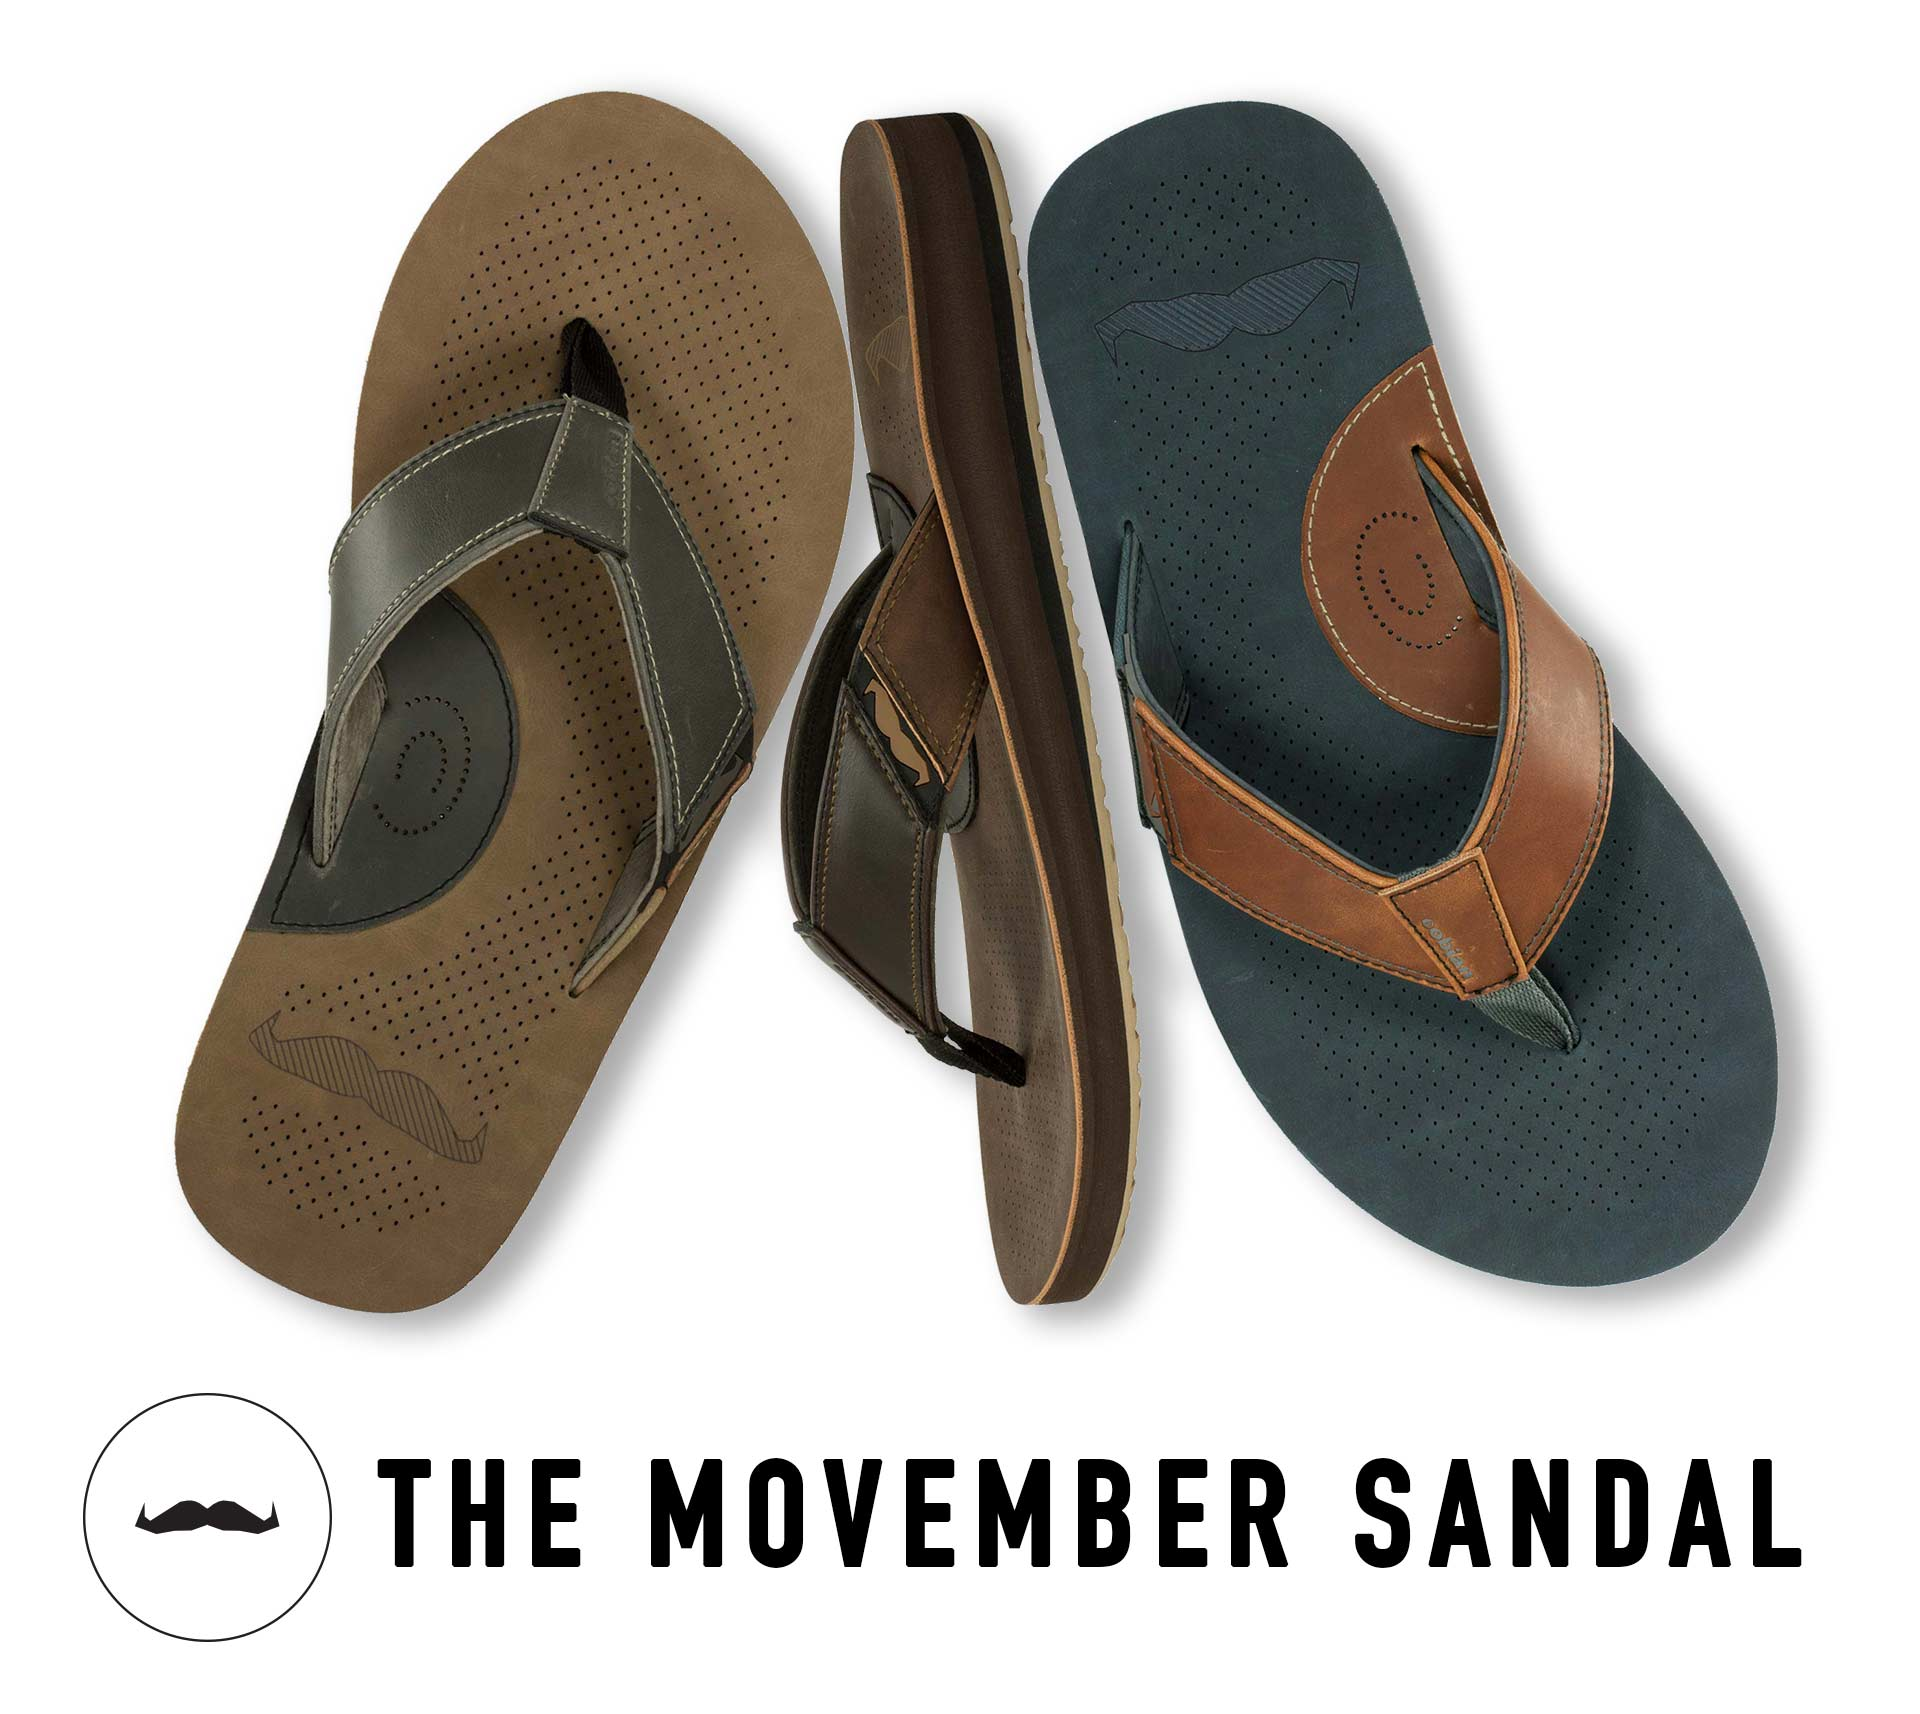 d88a2589e7e909 50% of sales will be donated to the Movember Foundation.